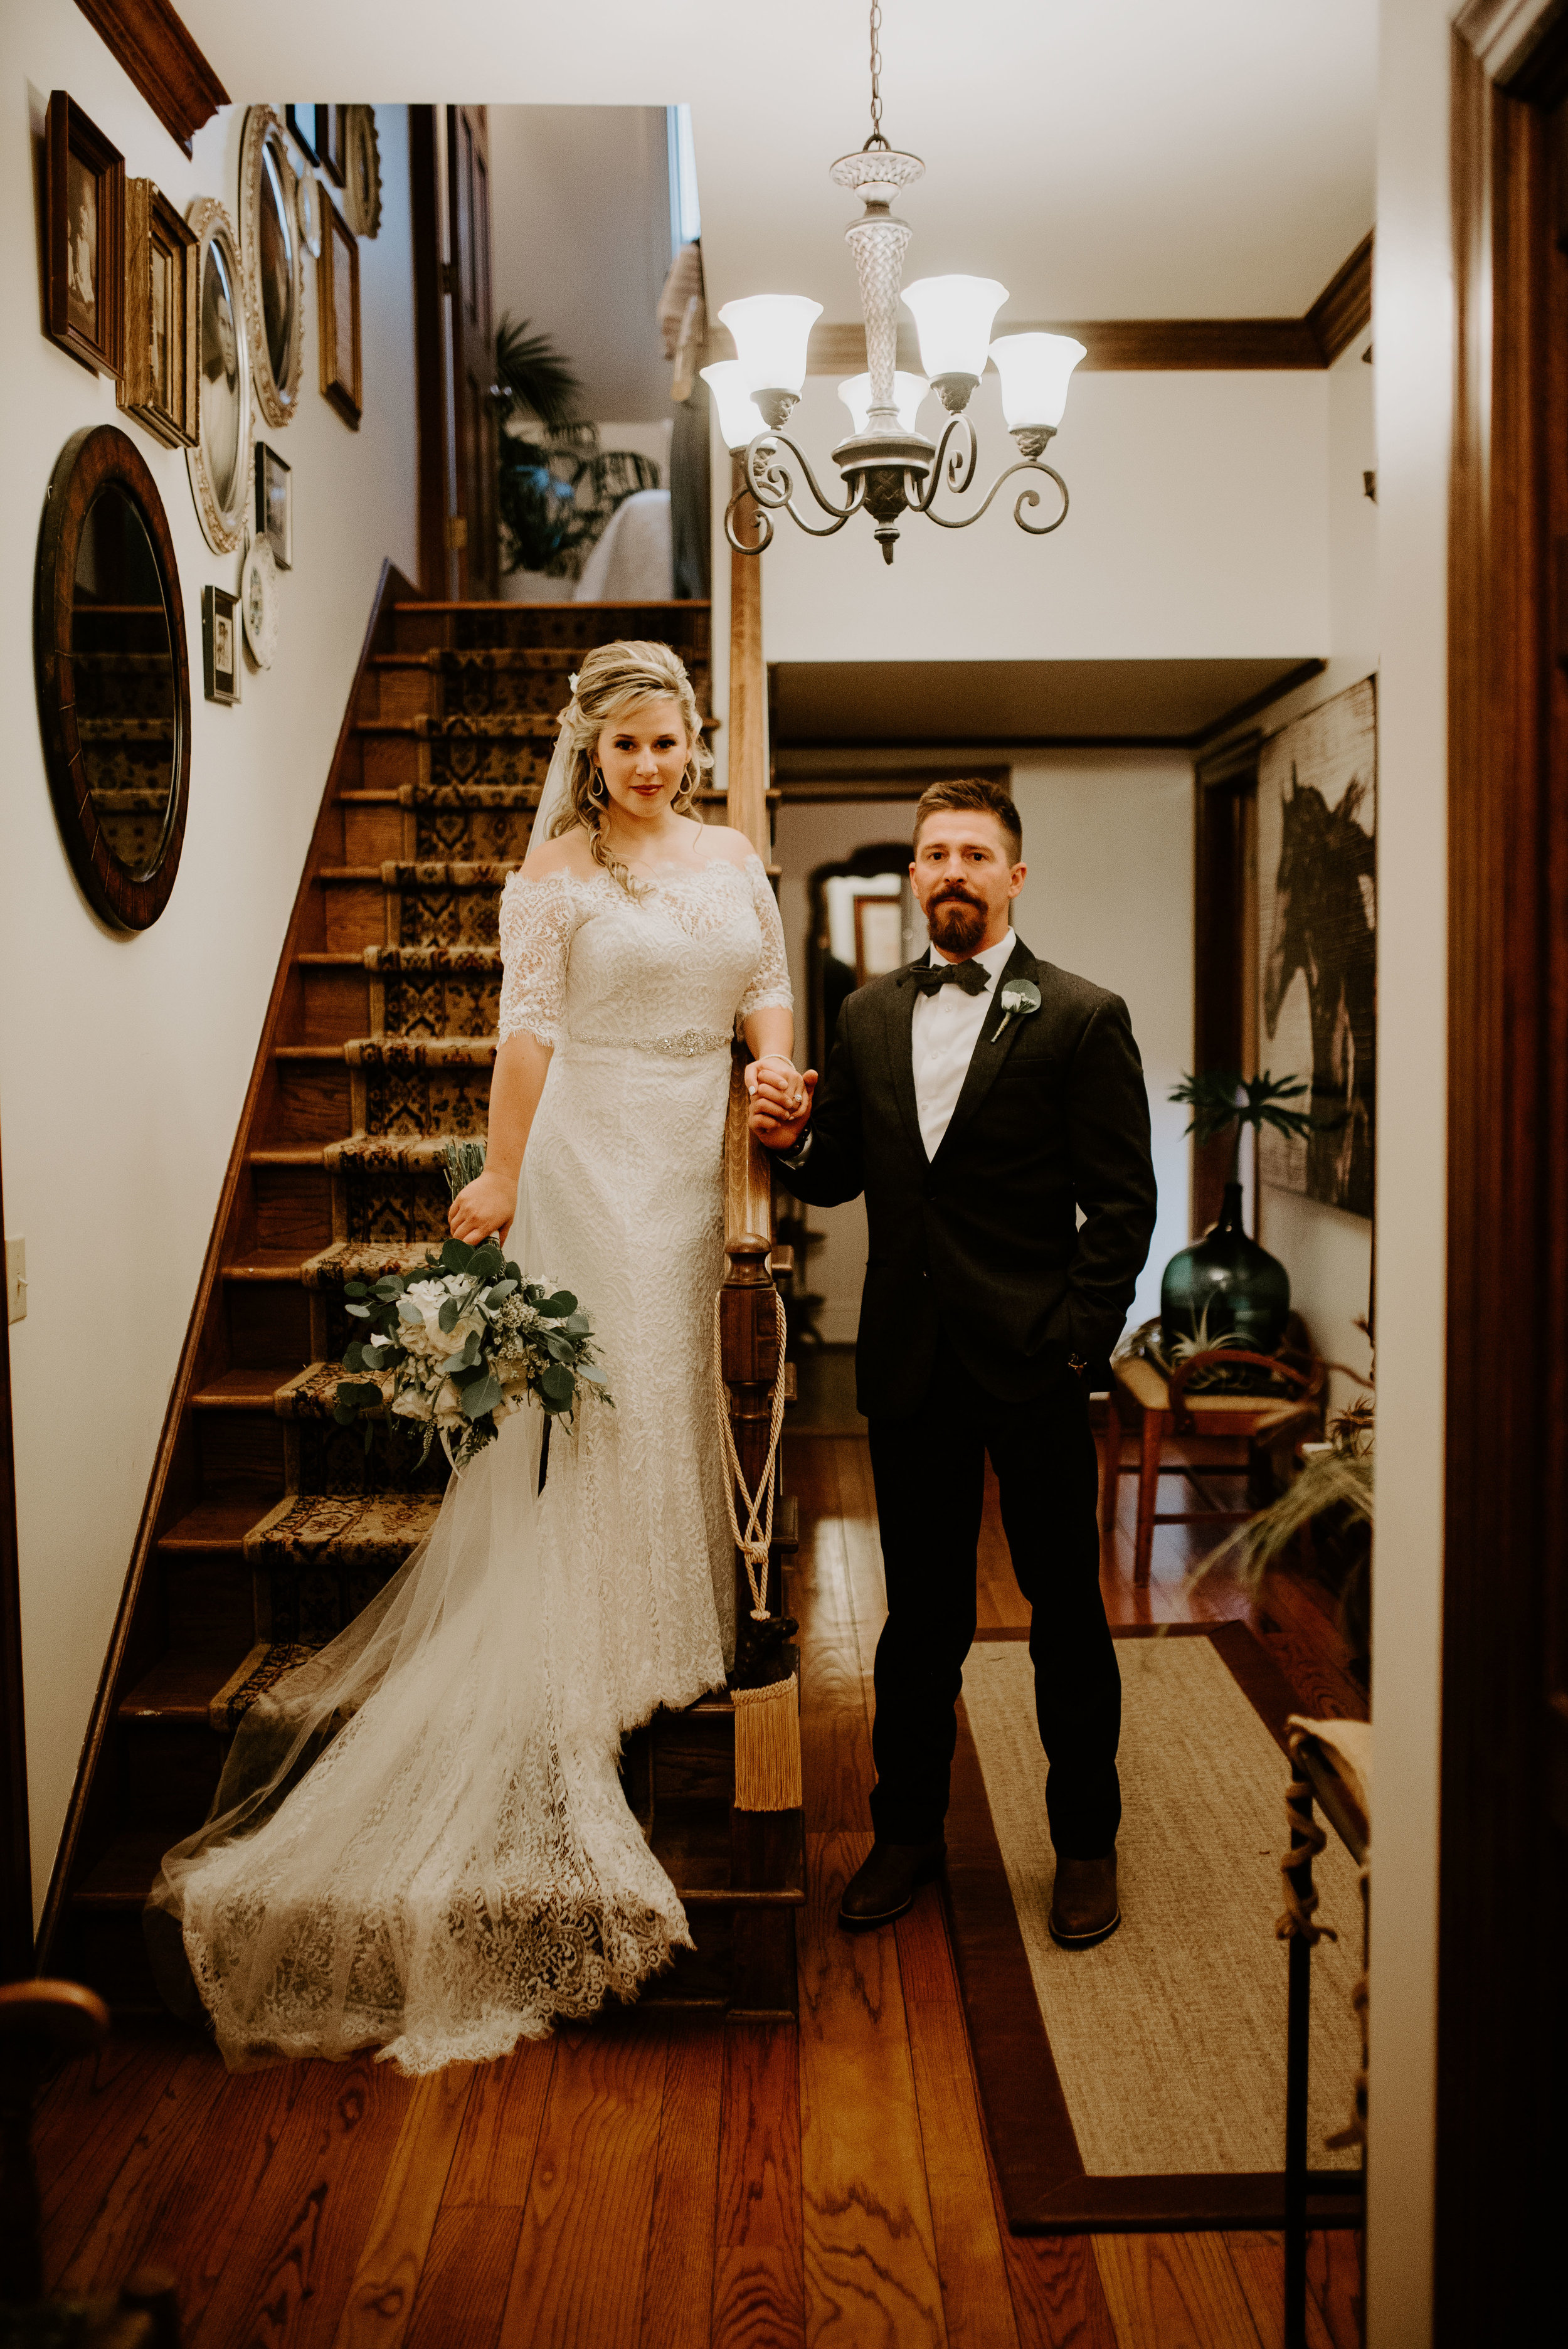 Bride and groom on staircase at Sweet Meadow Farms in Tallapoosa, GA